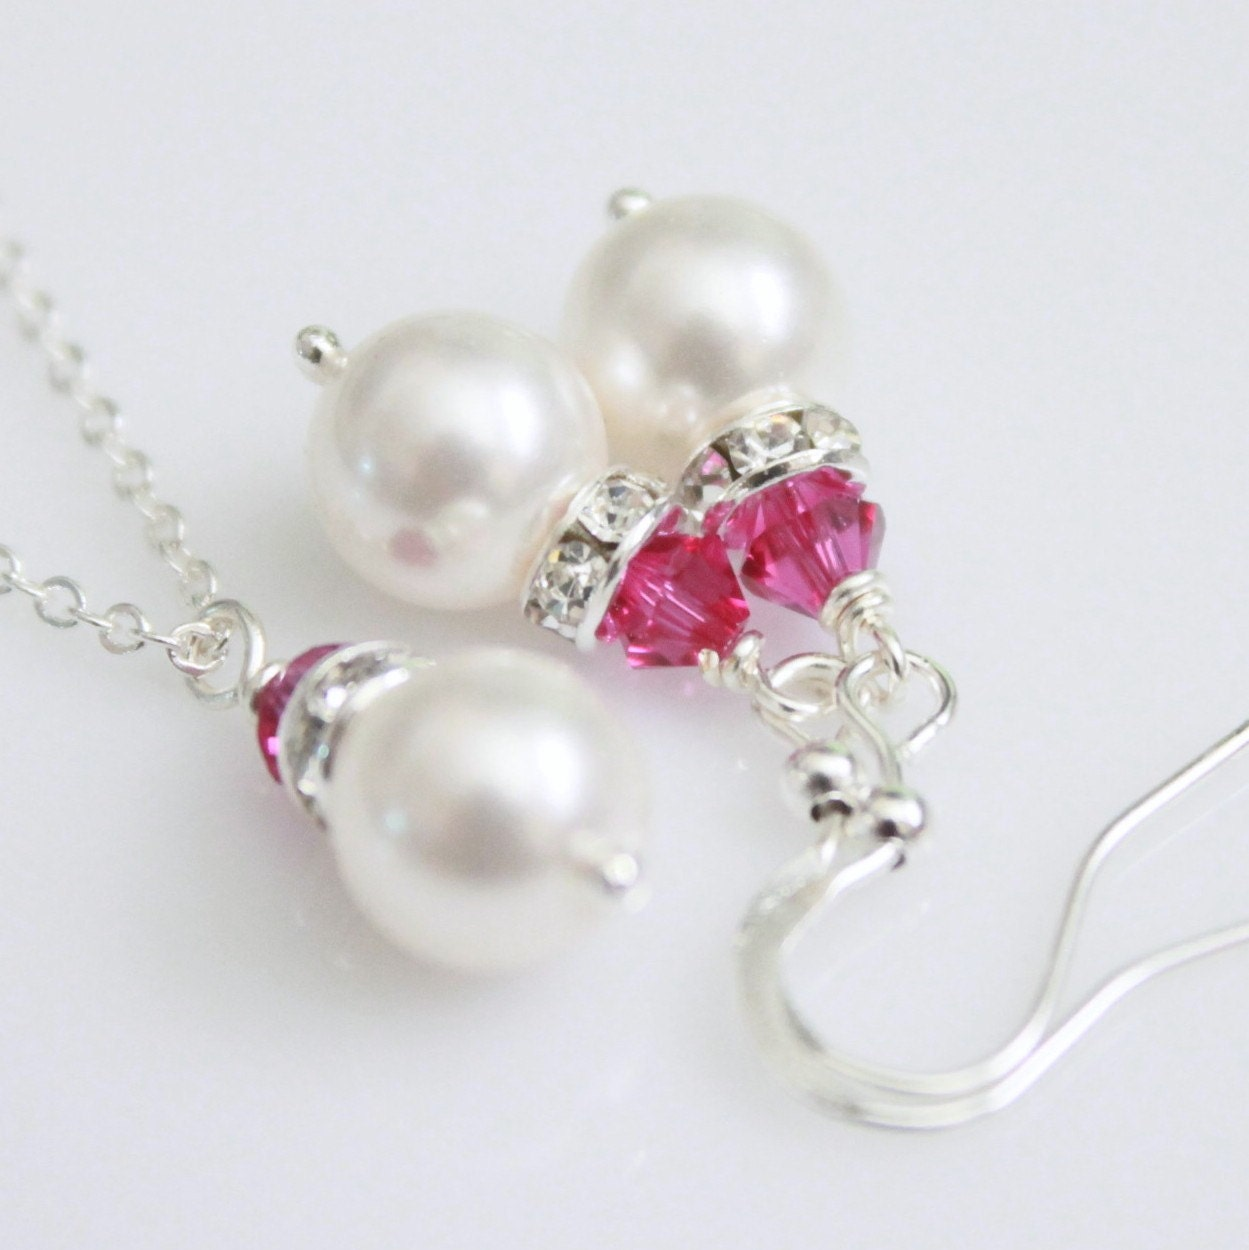 Available in Other Colors, Bridesmaid Gift Set - Swarovski White Pearl and Fuschia Crystal Necklace and Earring Set